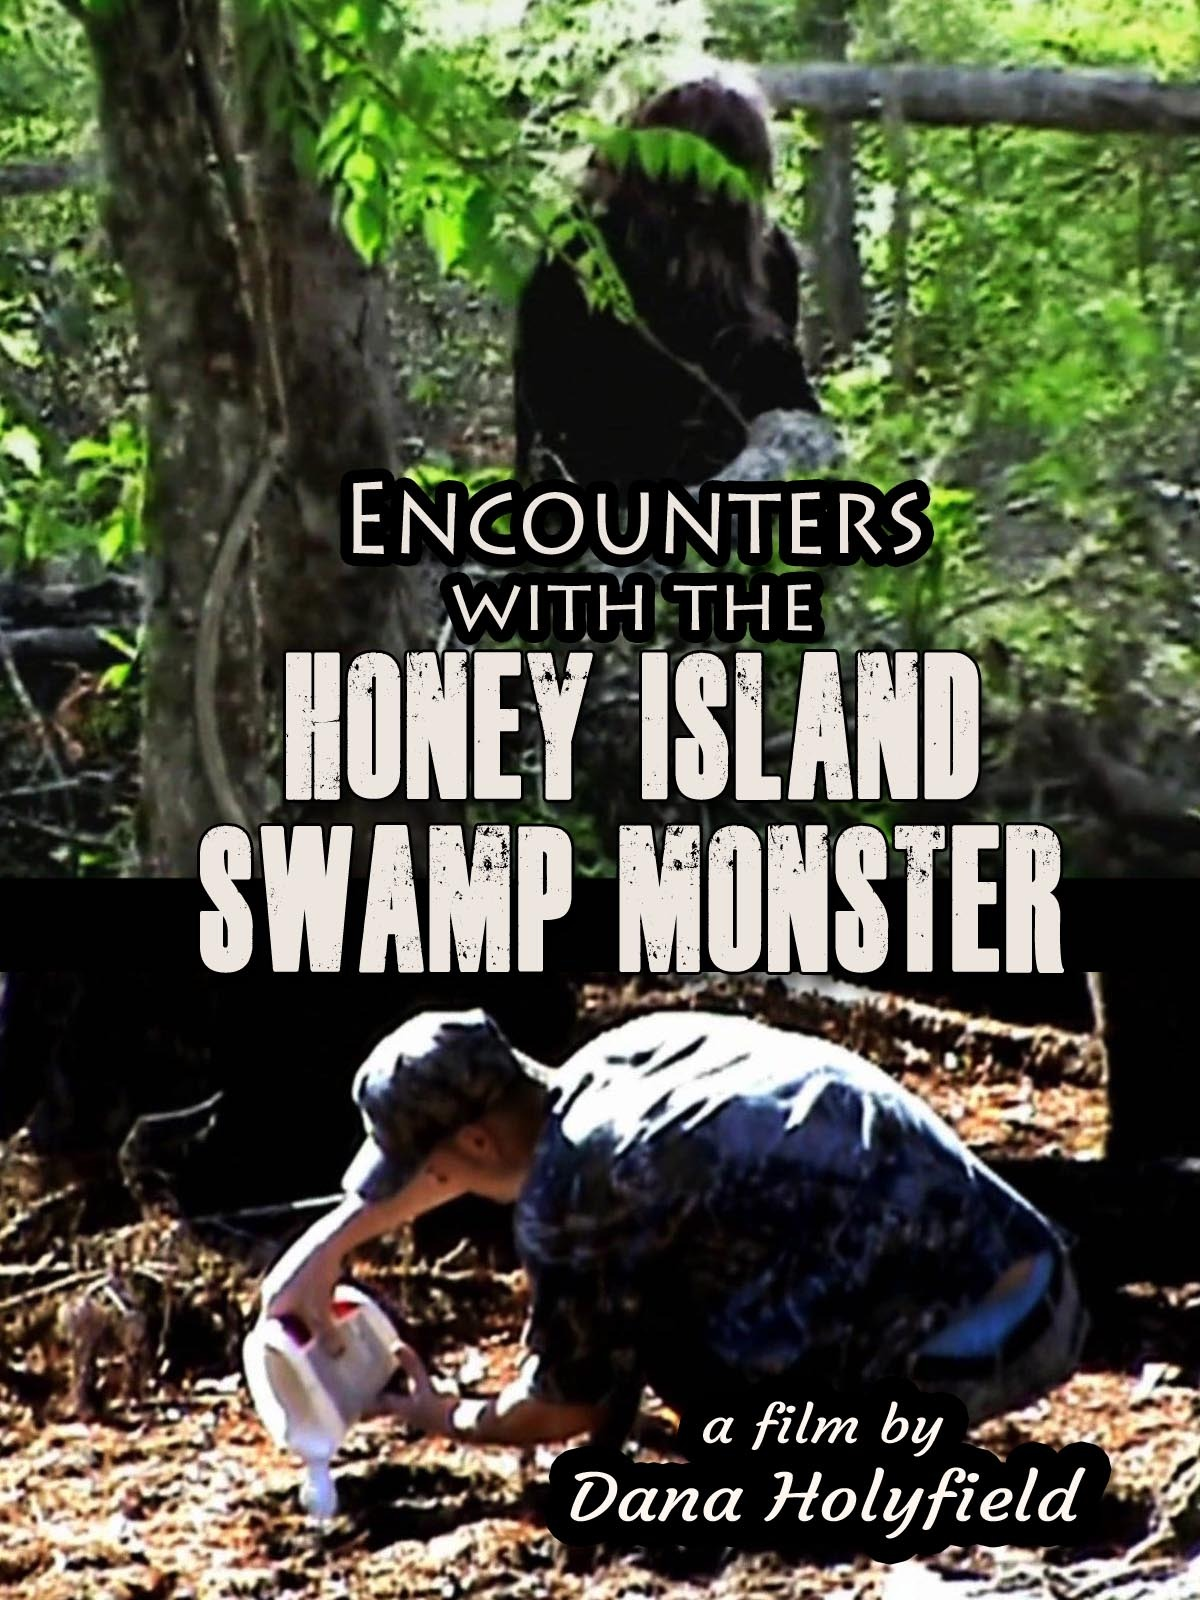 Encounters with the Honey Island Swamp Monster Documentary Film